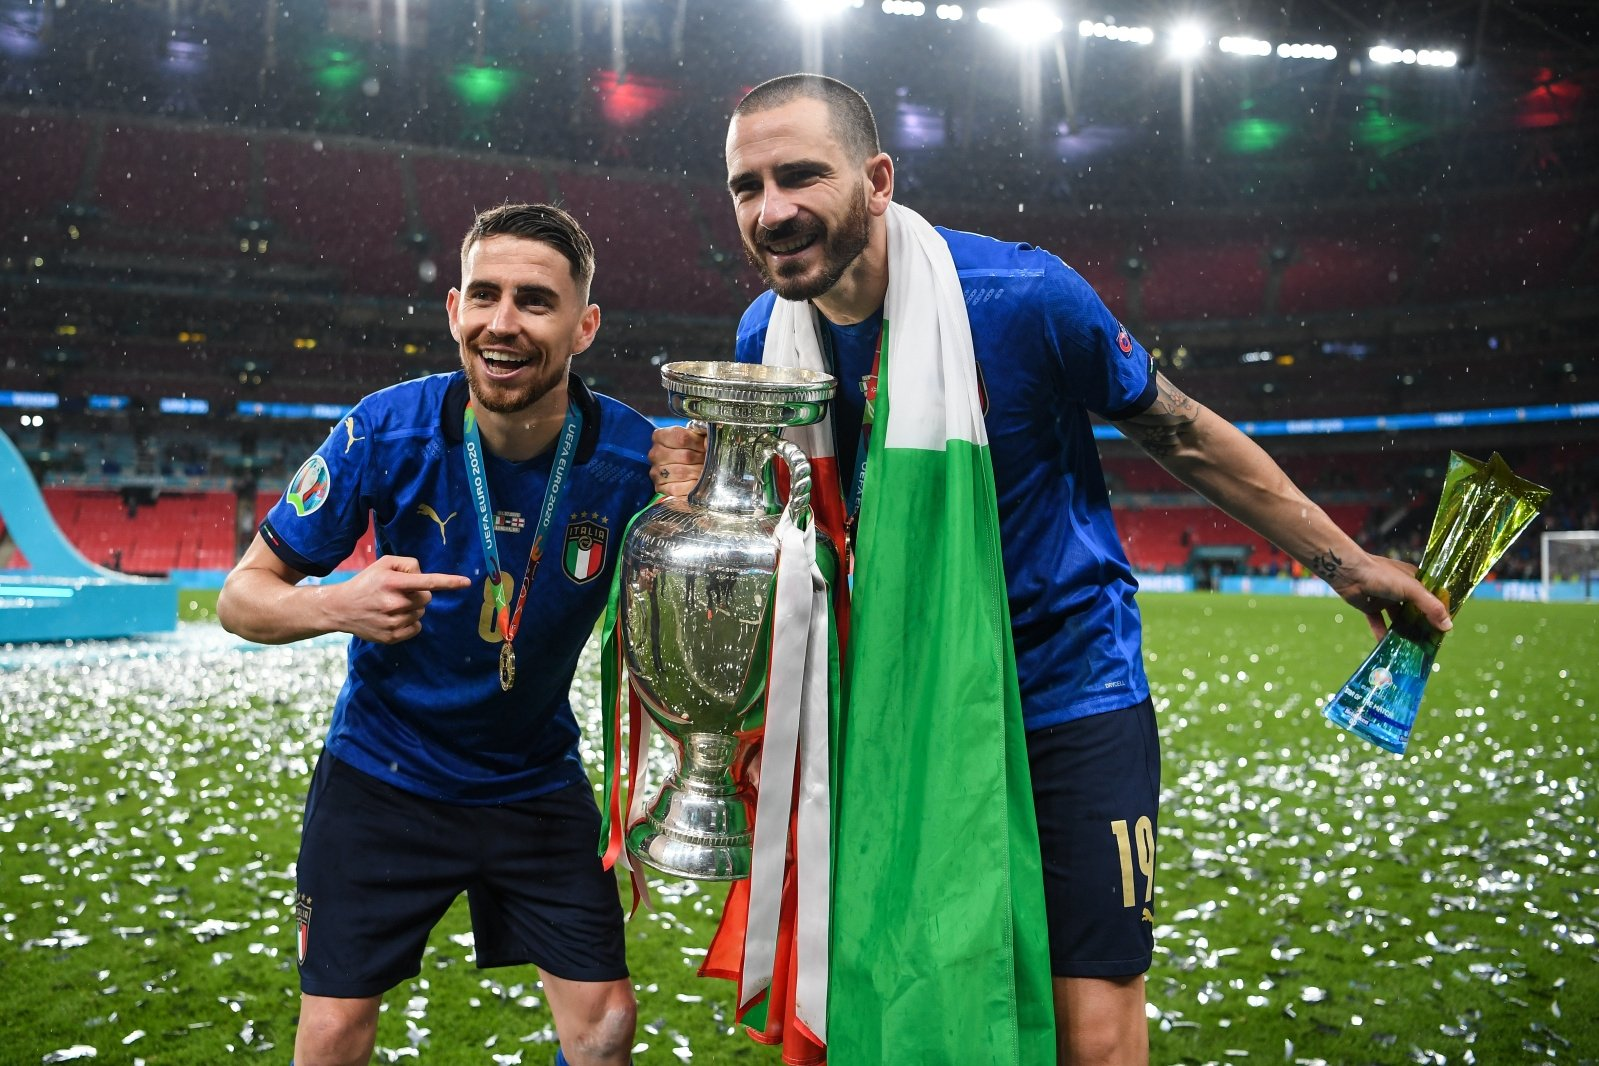 Italy's Jorginho and Leonardo Bonucci celebrate with the trophy after beating England in the Euro 2020 final at Wembley, London, England, July 11, 2021. (AA Photo)